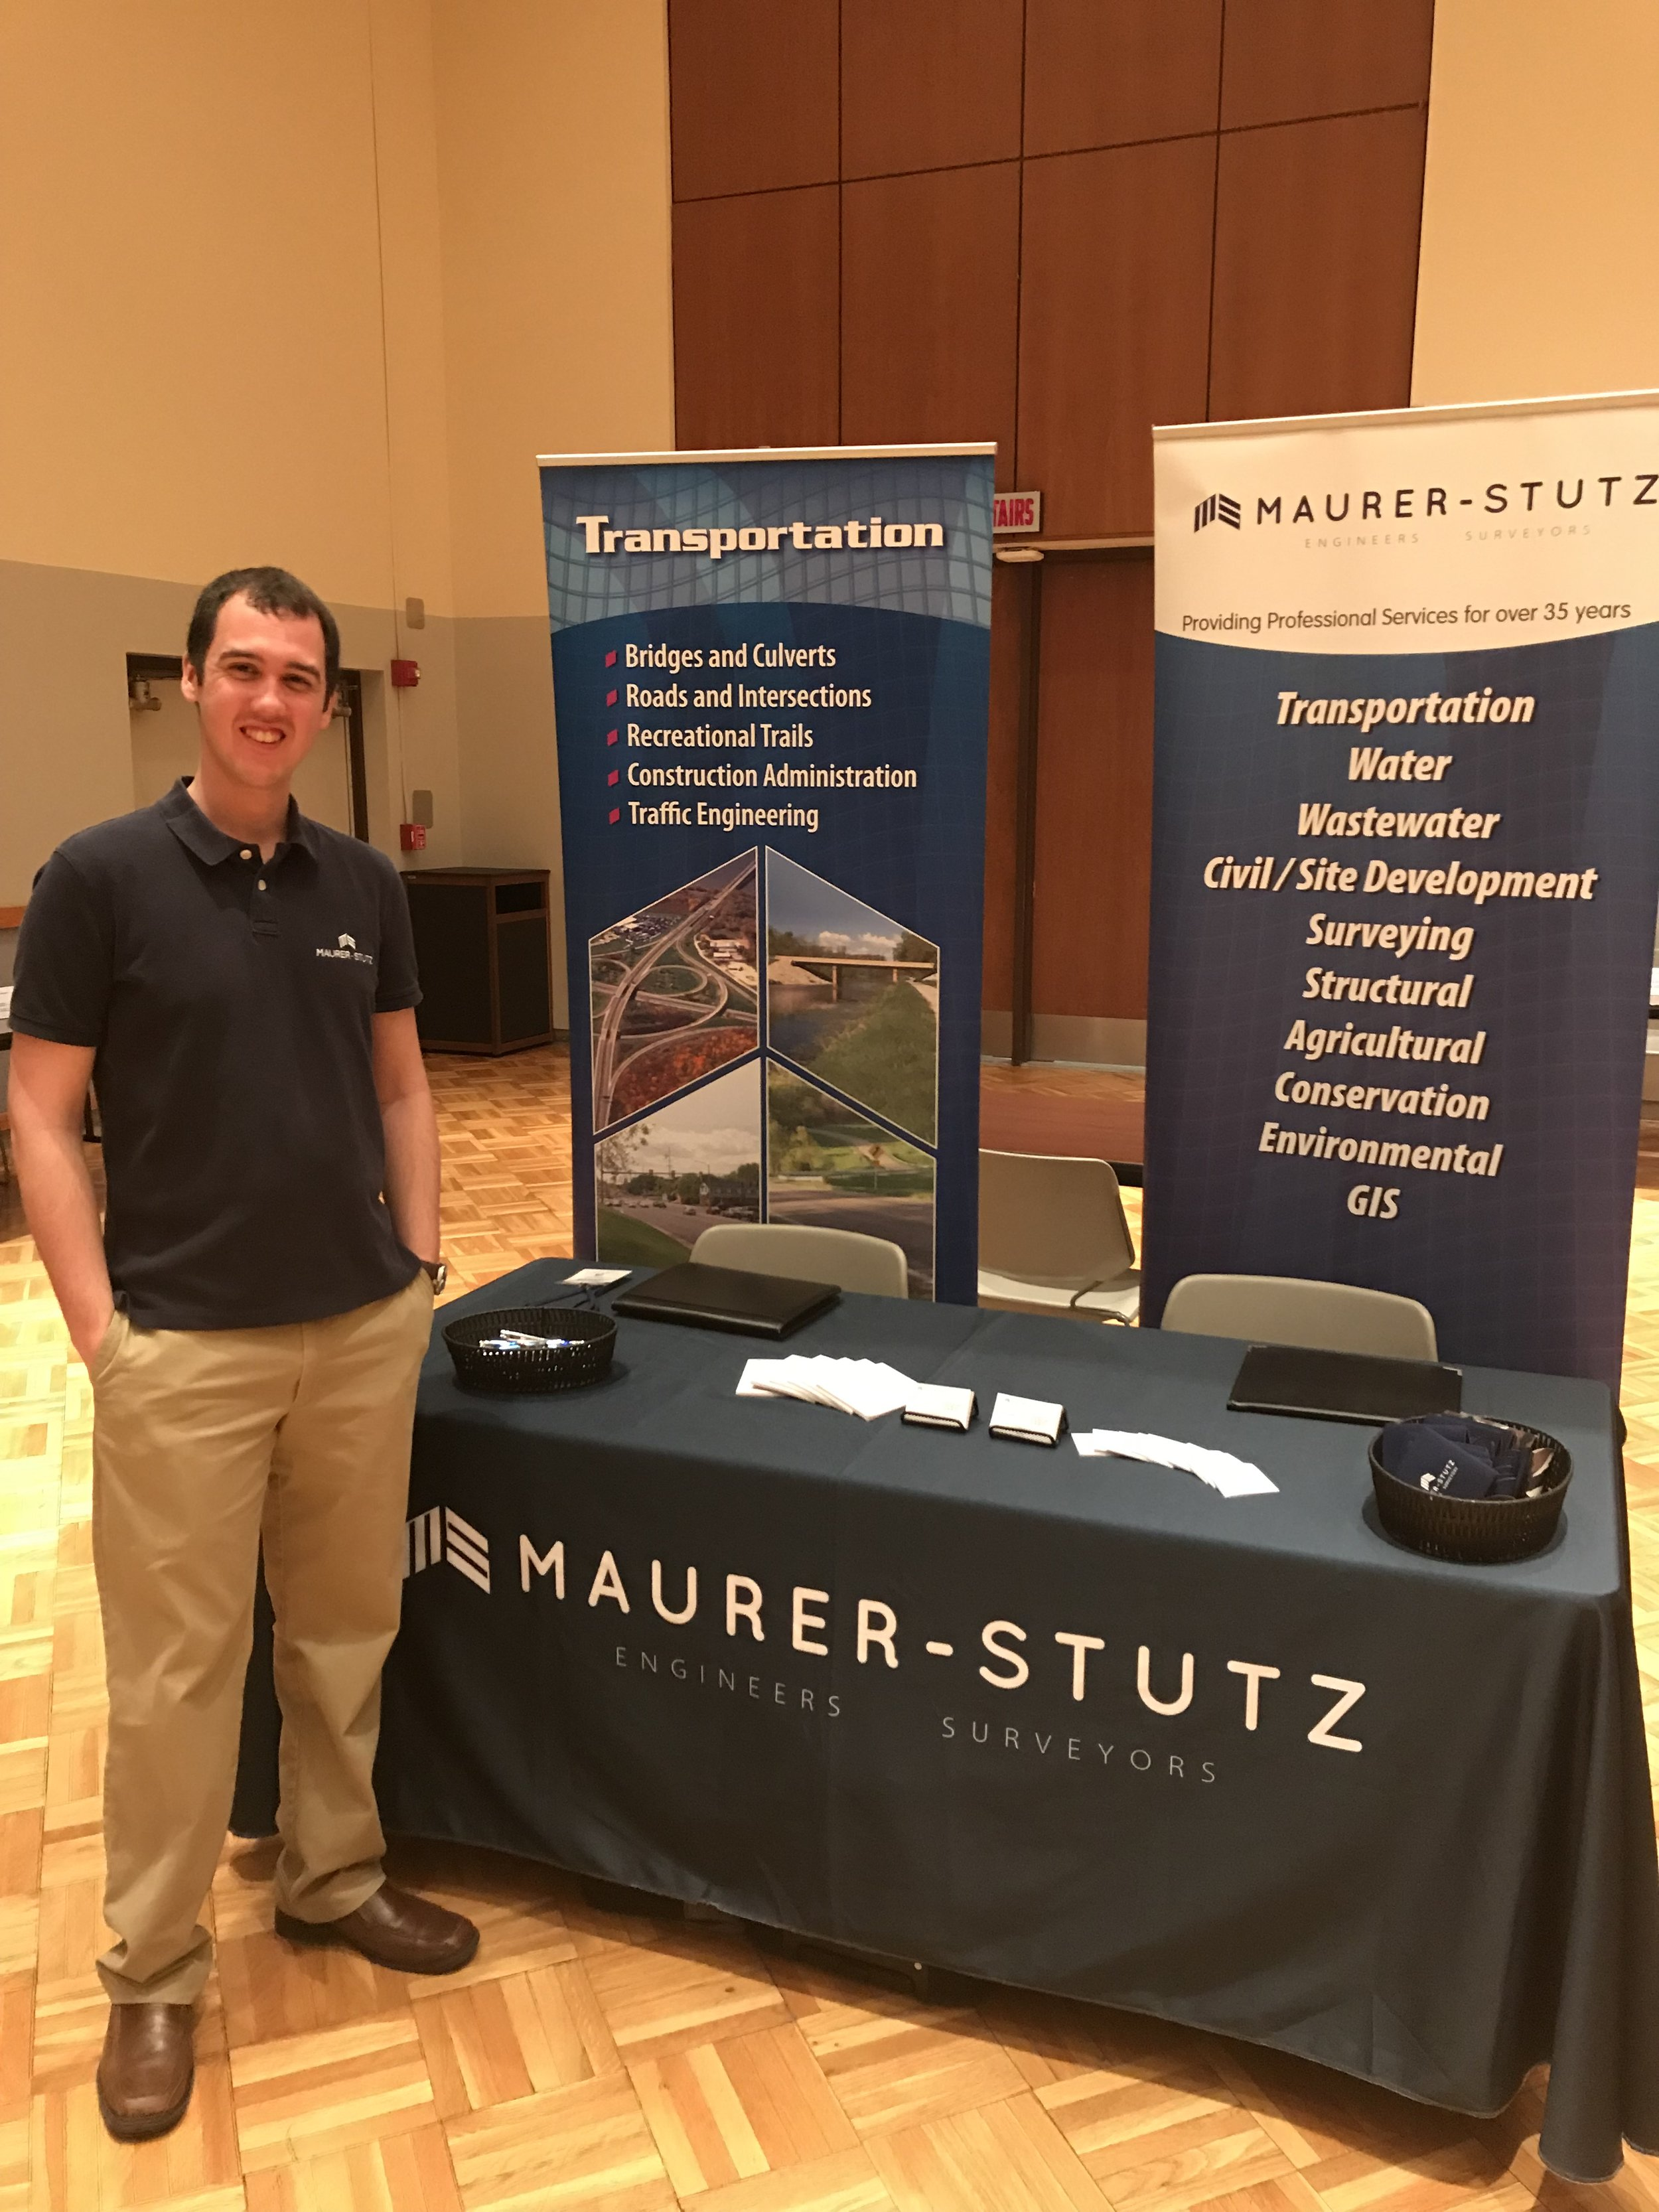 Bayler Wagehoft and Jeff Spiller represented Maurer-Stutz and the SIU-Carbondale Job and Internship Fair on Feb. 19, 2019 and will attend the Bradley University Spring Job & Internship Fair On Feb 21, 2019.